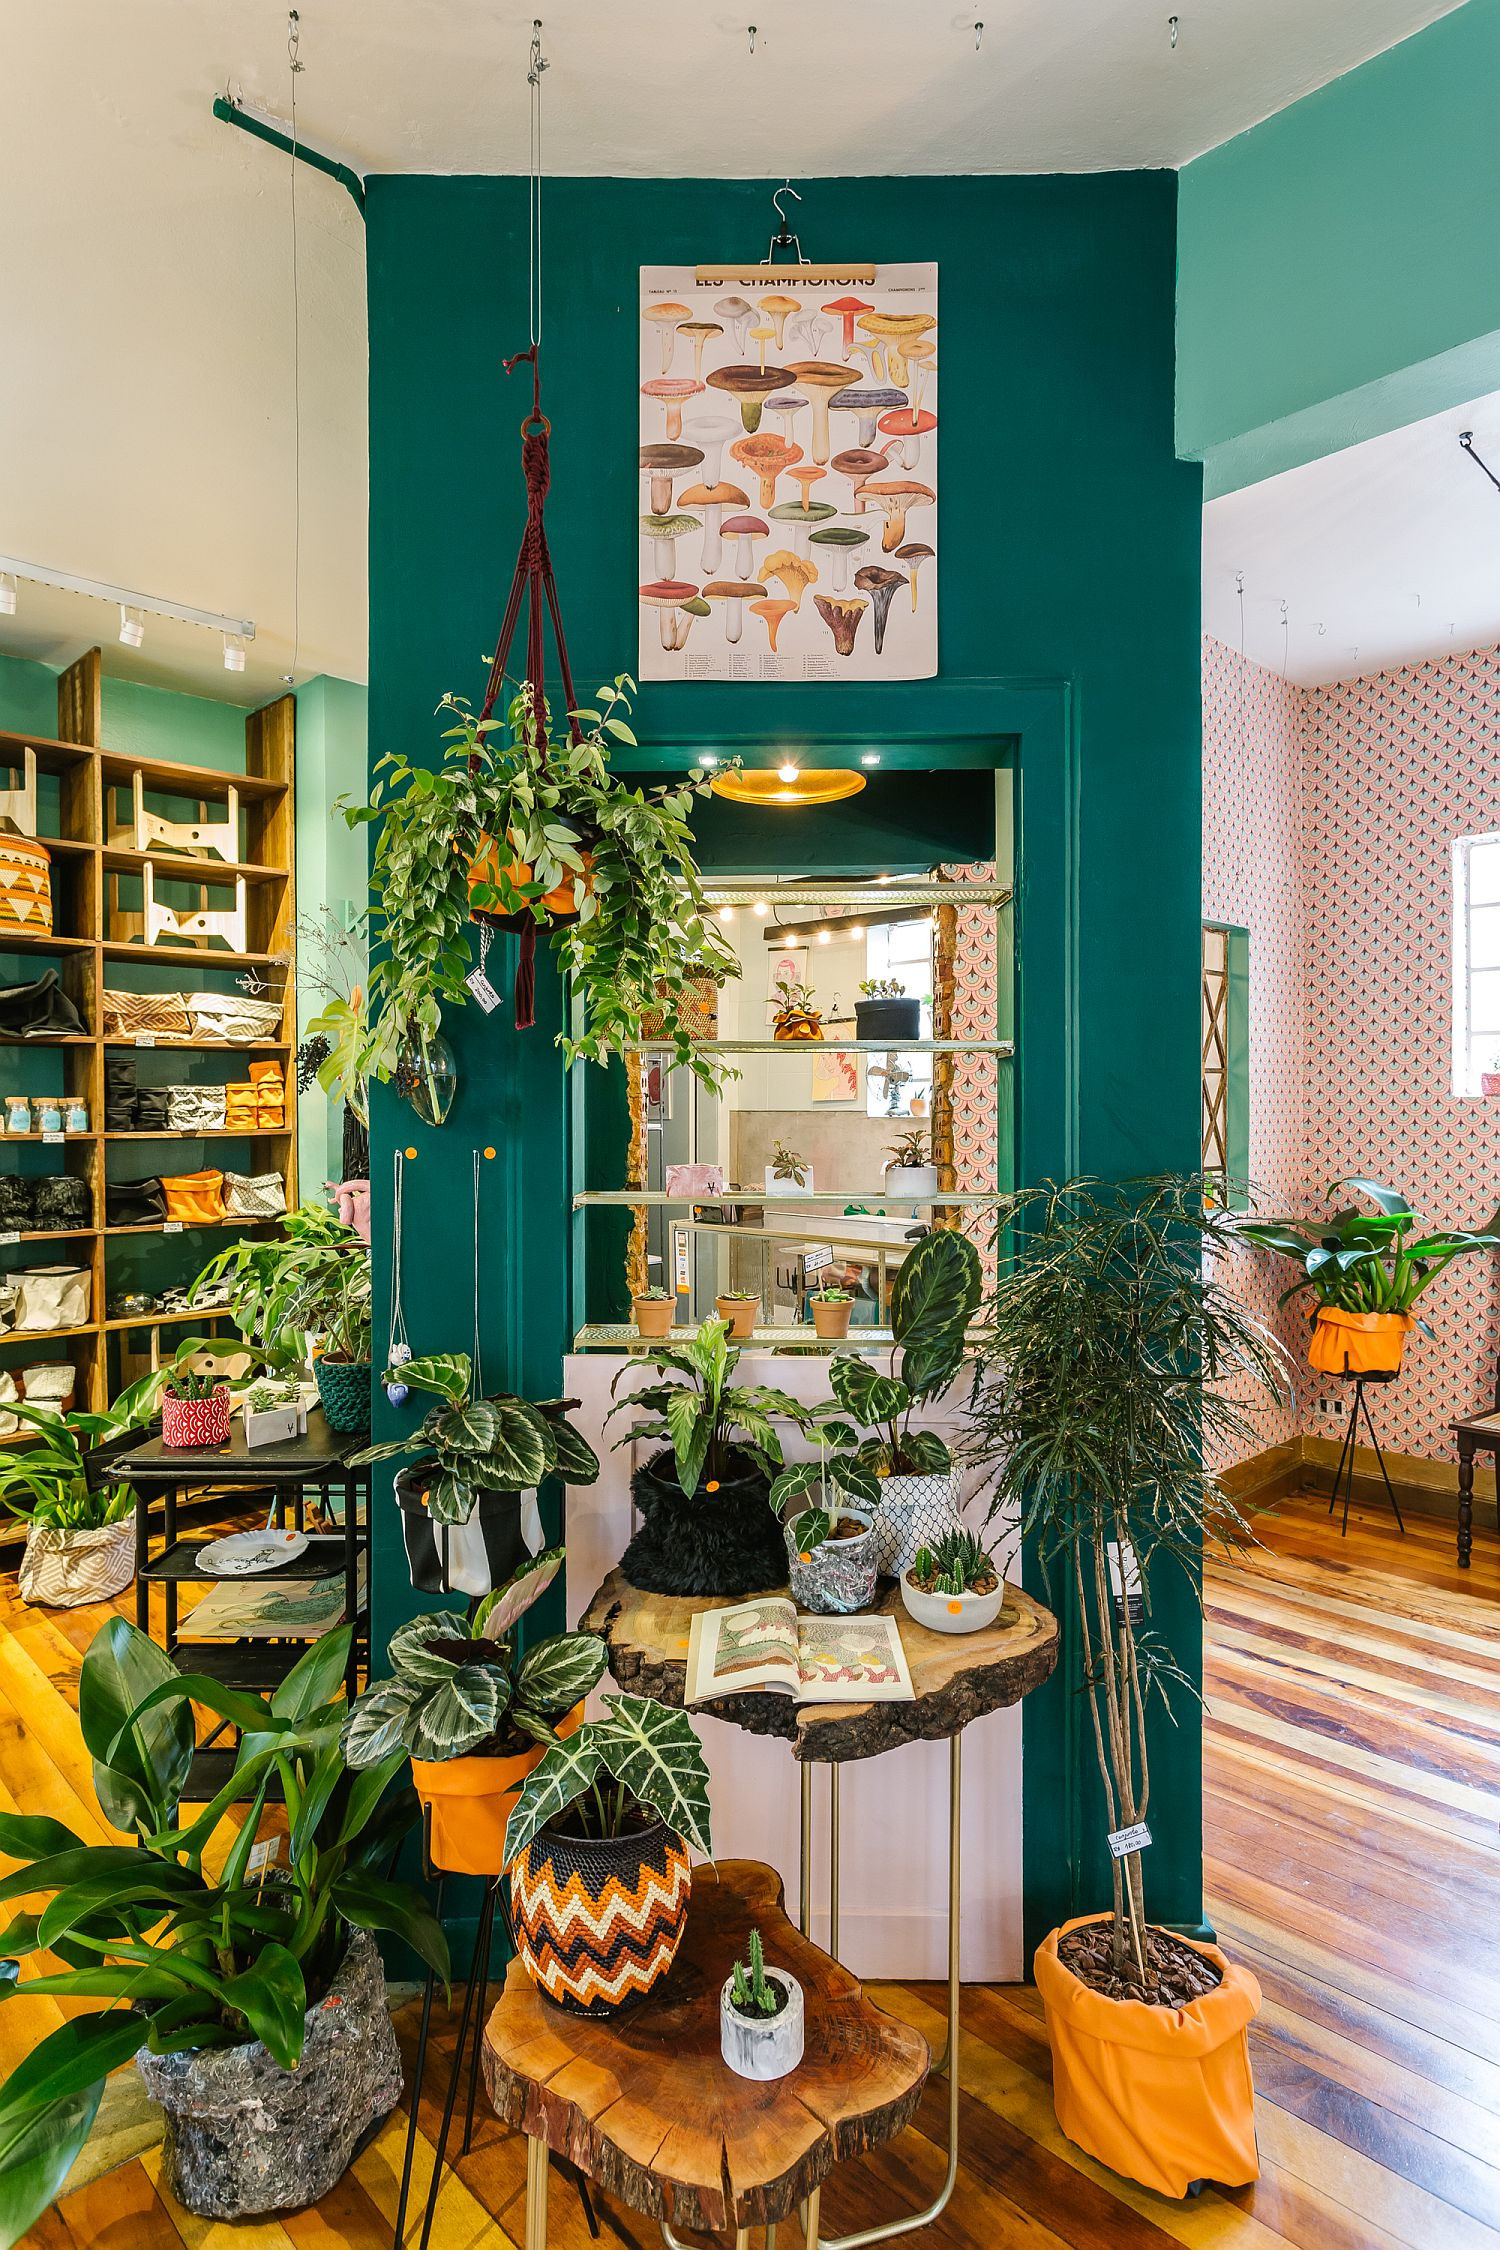 Classic Brazilian cafe combined with plants store Borealis in downtown store